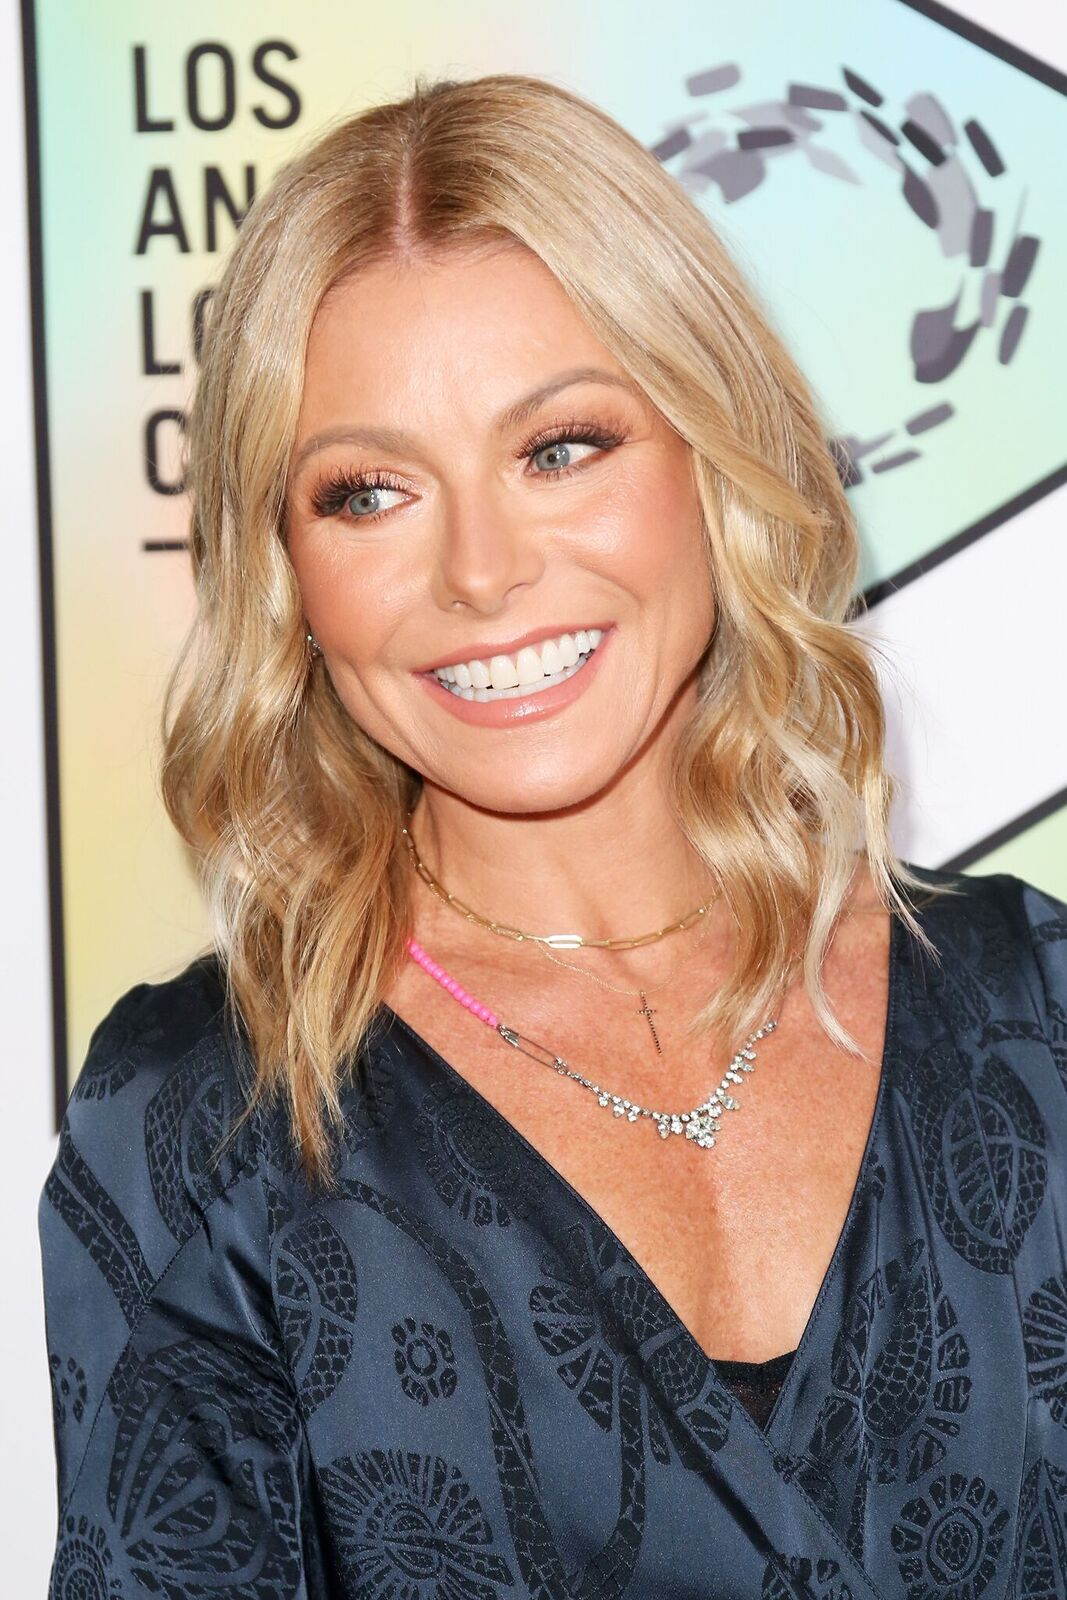 Host Kelly Ripa arrives at the Los Angeles LGBT Center's 49th Anniversary Gala Vanguard Awards at The Beverly Hilton Hotel on September 22, 2018 in Beverly Hills, California | Photo: Getty Images